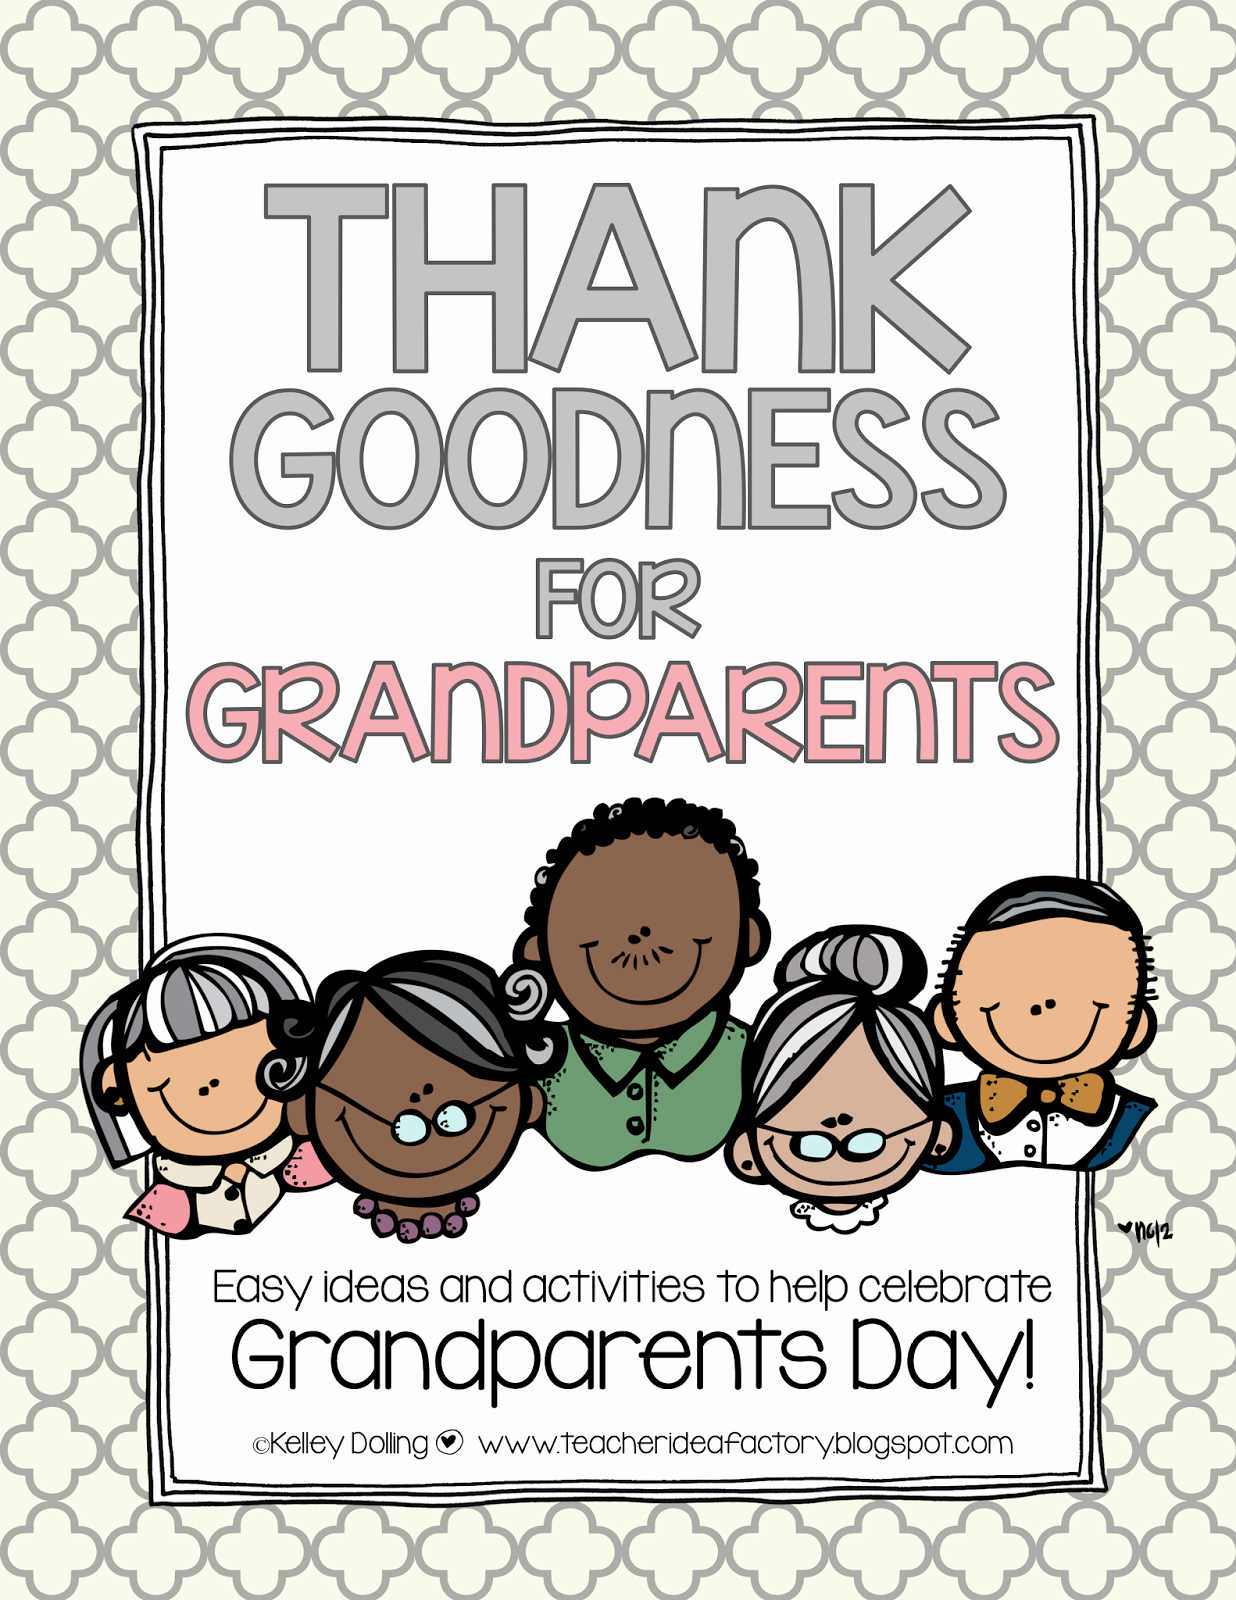 Grandparents Day Invitation Template Awesome Teacher Idea Factory Thank Goodness for Grandparents